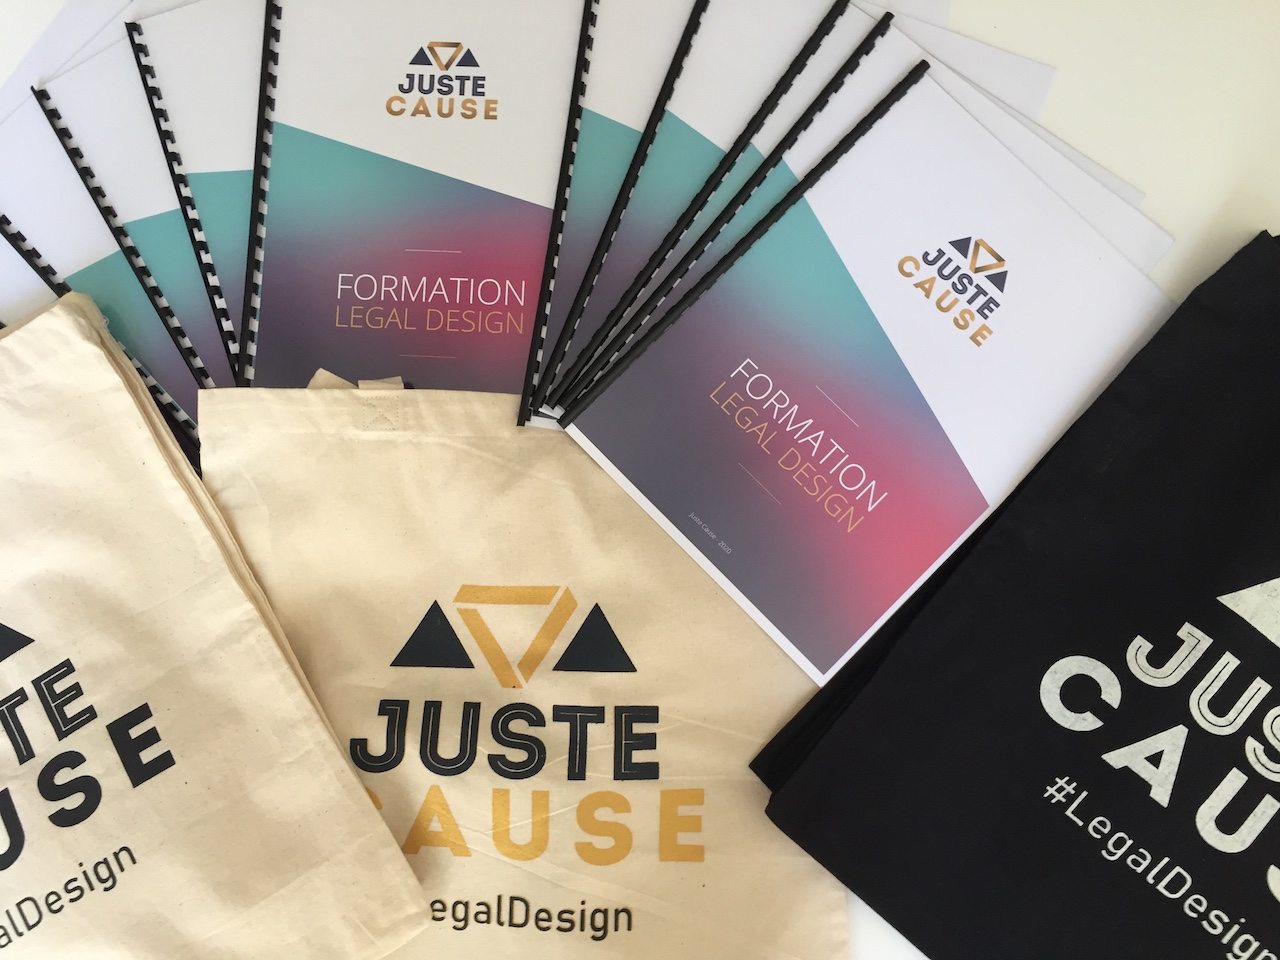 photo-juste-cause-formation-legal-design